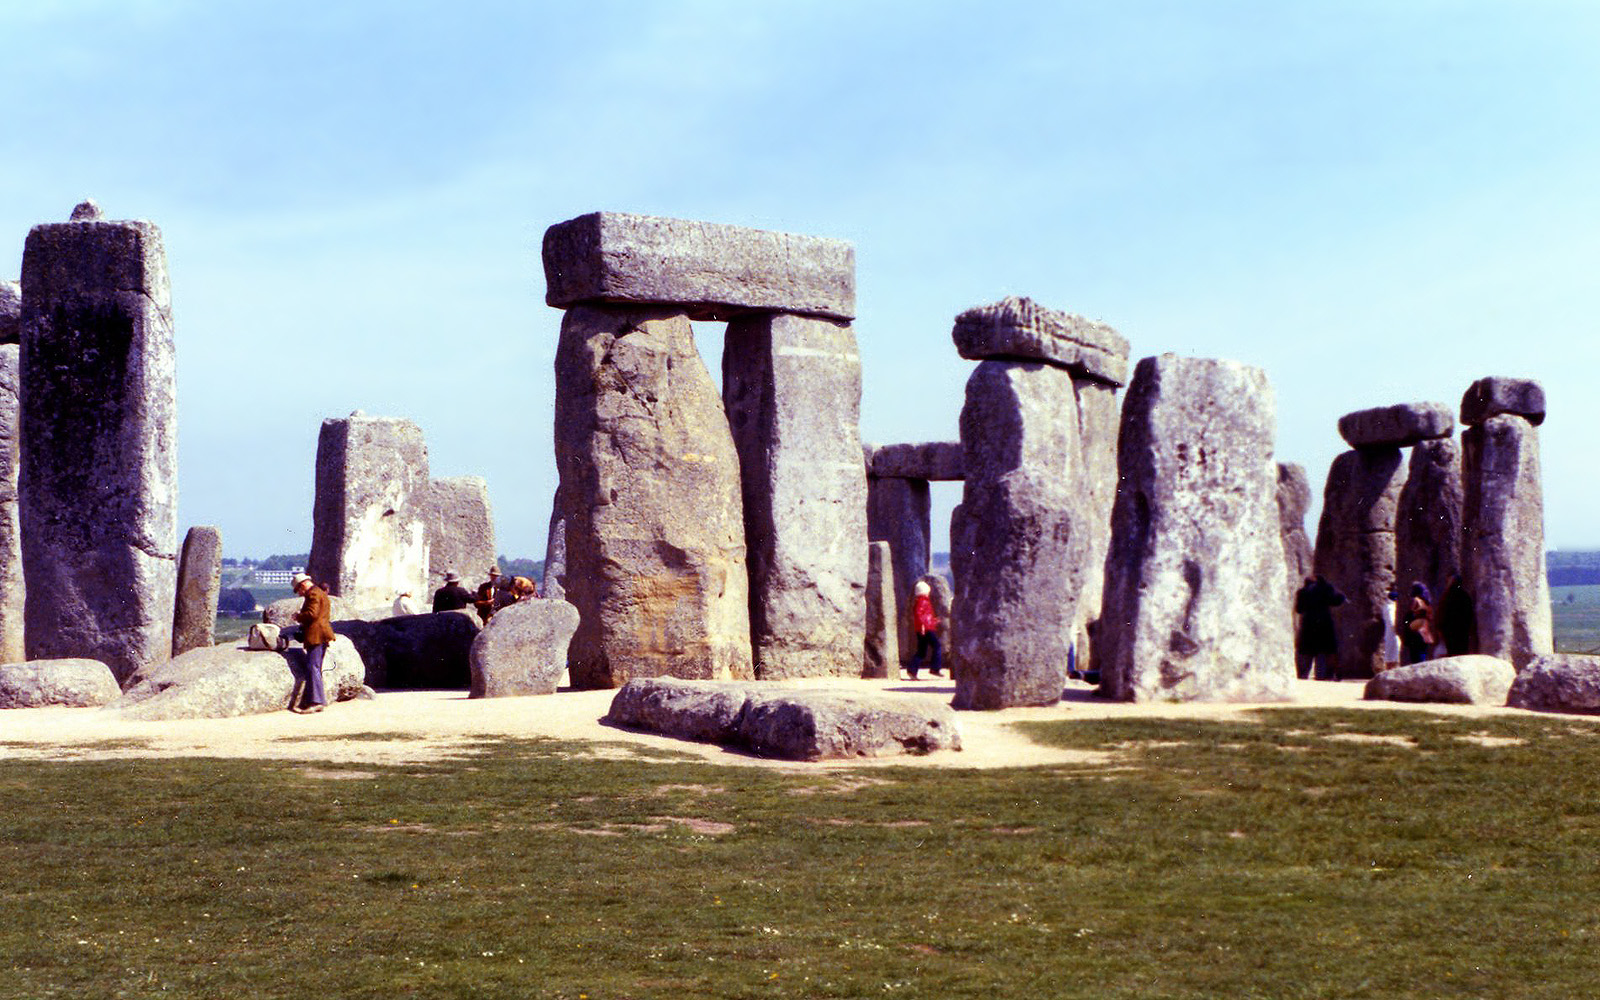 murray introduction stonehenge Stonehenge is a prehistoric monument in wiltshire, england, 2 miles (3 km) west of amesbury it consists of a ring of standing stones , with each standing stone around 13 feet (40 m) high, 7 feet (21 m) wide and weighing around 25 tons.